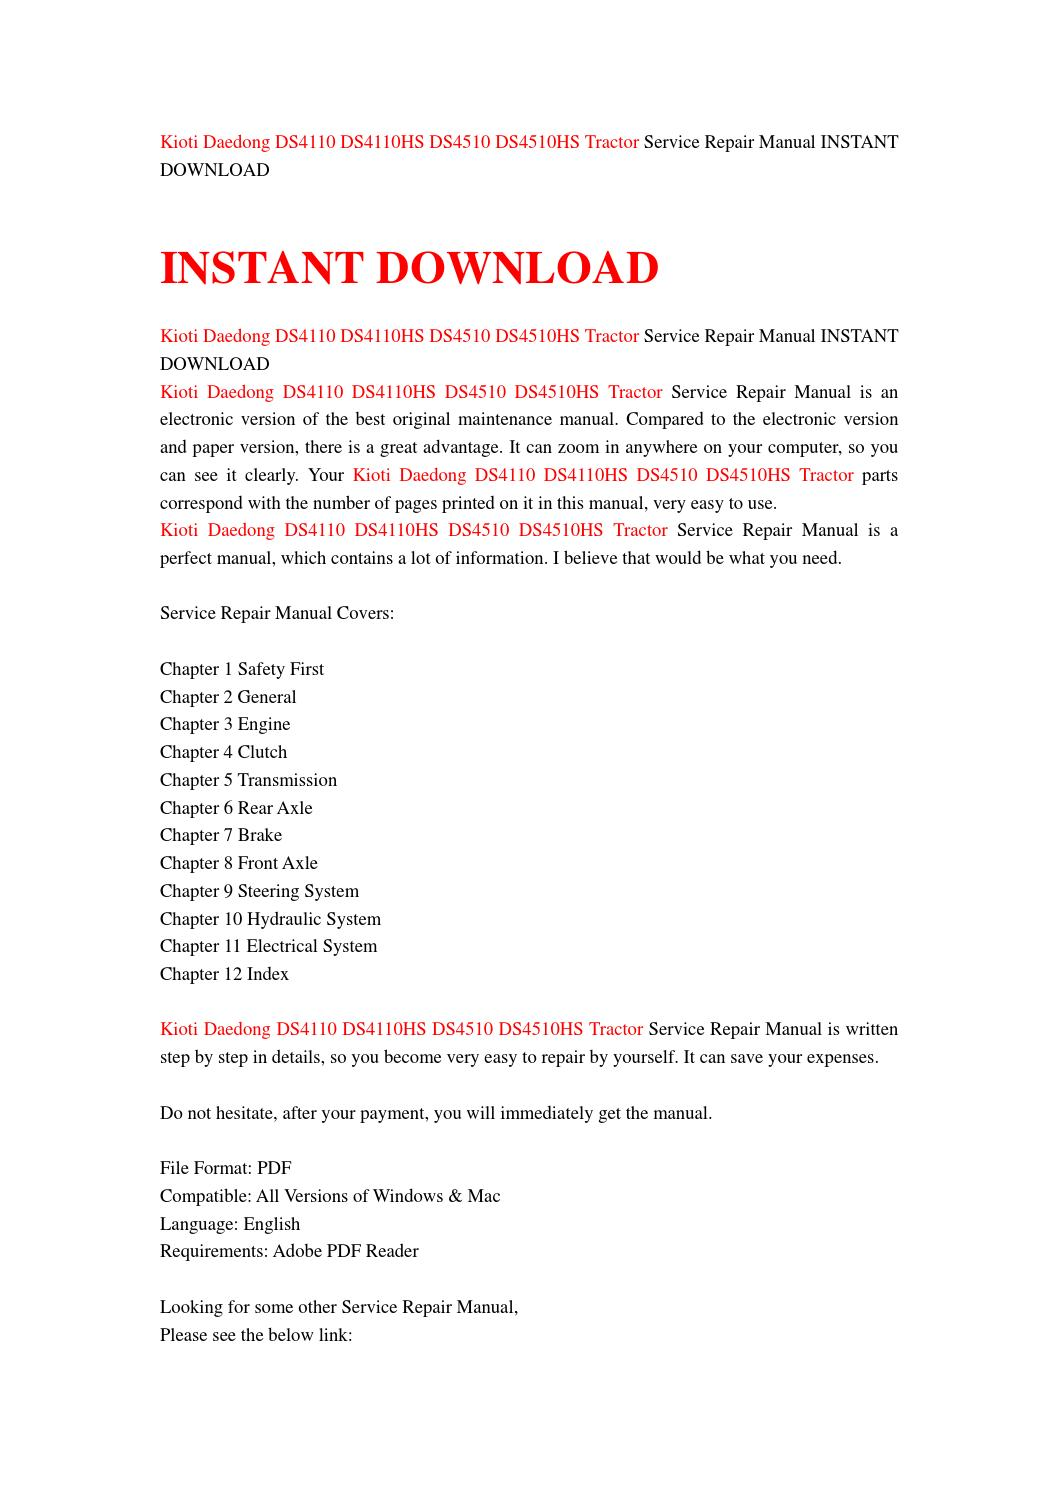 kioti daedong ds4110 ds4110hs ds4510 ds4510hs tractor service repair manual instant download